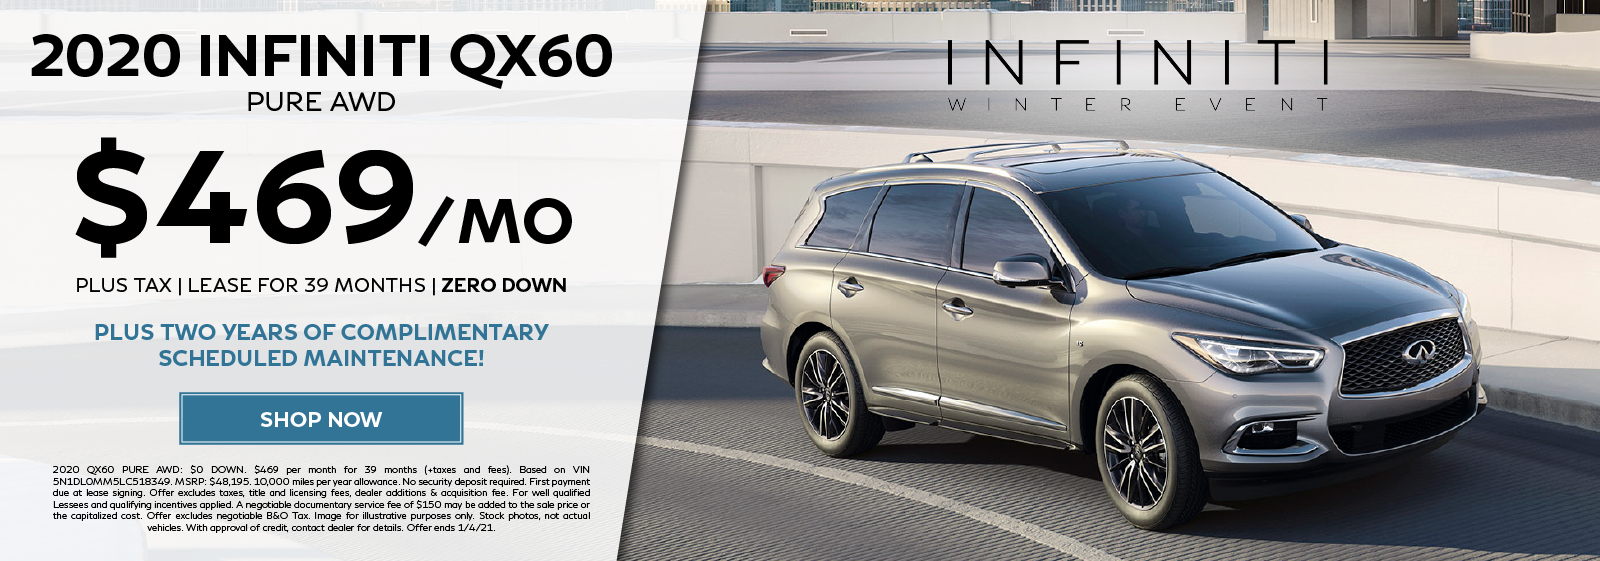 Lease a new 2020 QX60 PURE AWD for $469 per month for 39 months plus get two years of complimentary scheduled maintenance. Click to shop now.